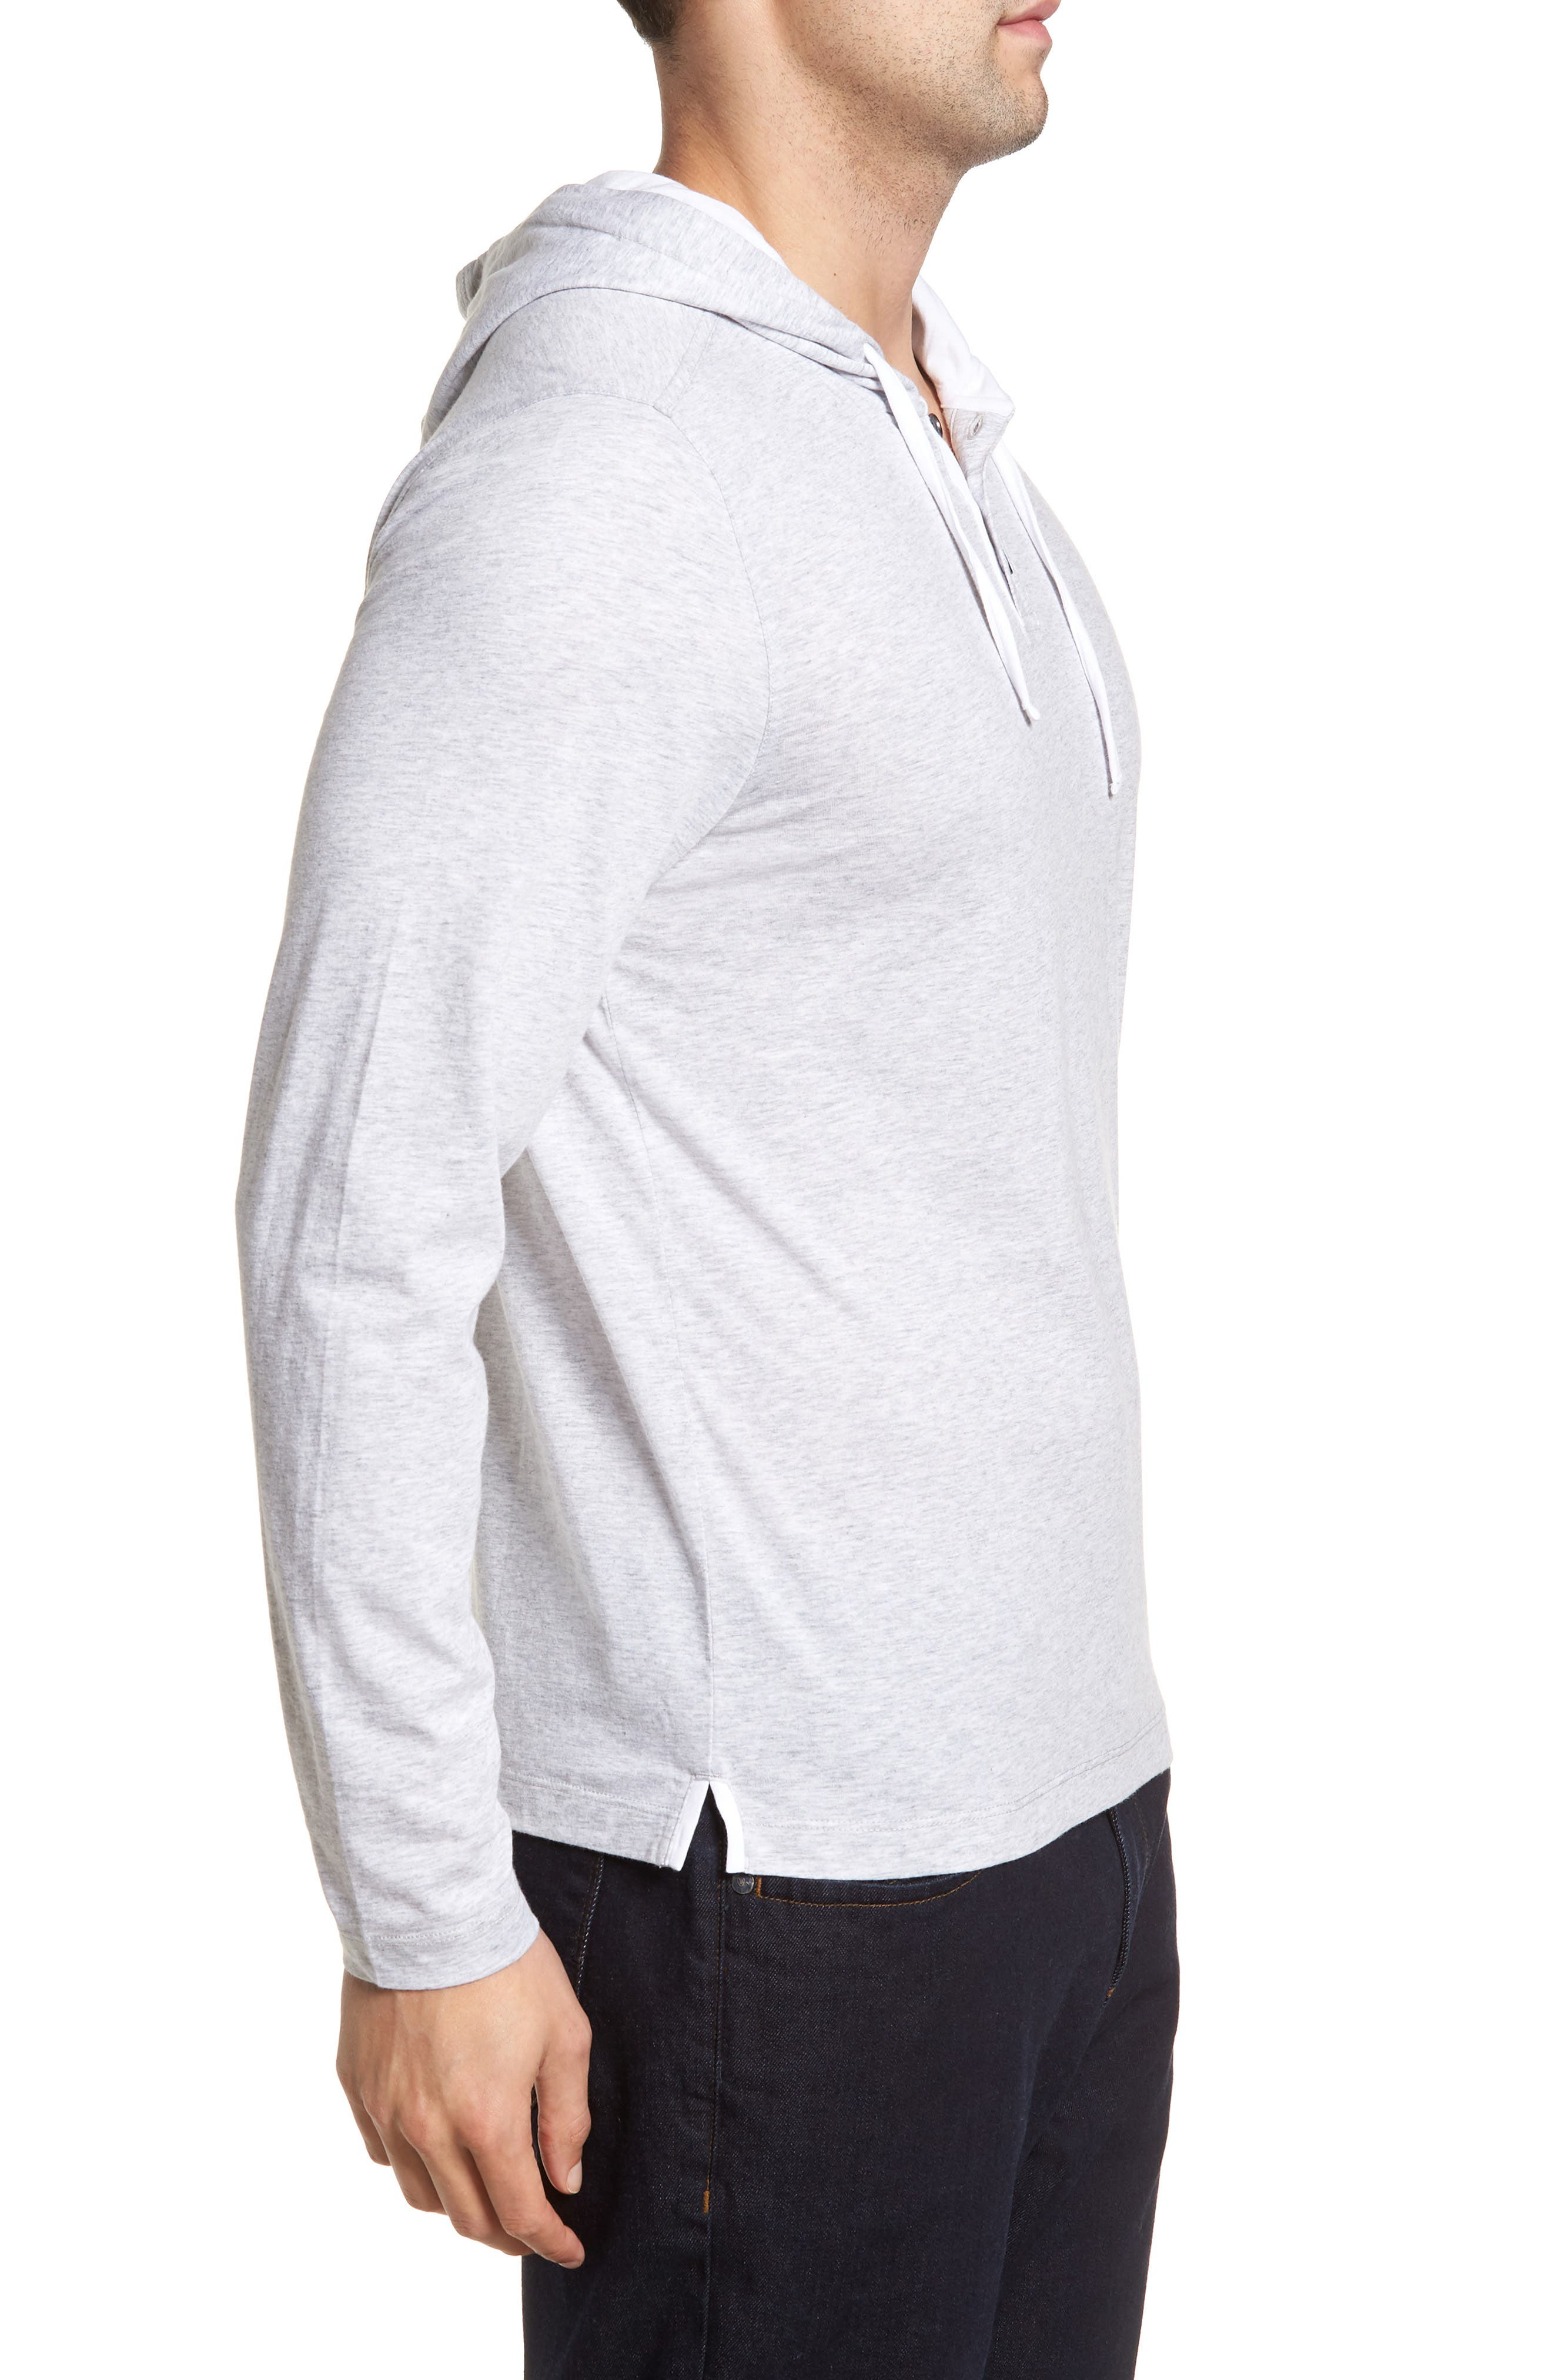 Carl Pullover Hoodie,                             Alternate thumbnail 3, color,                             DOVE GREY